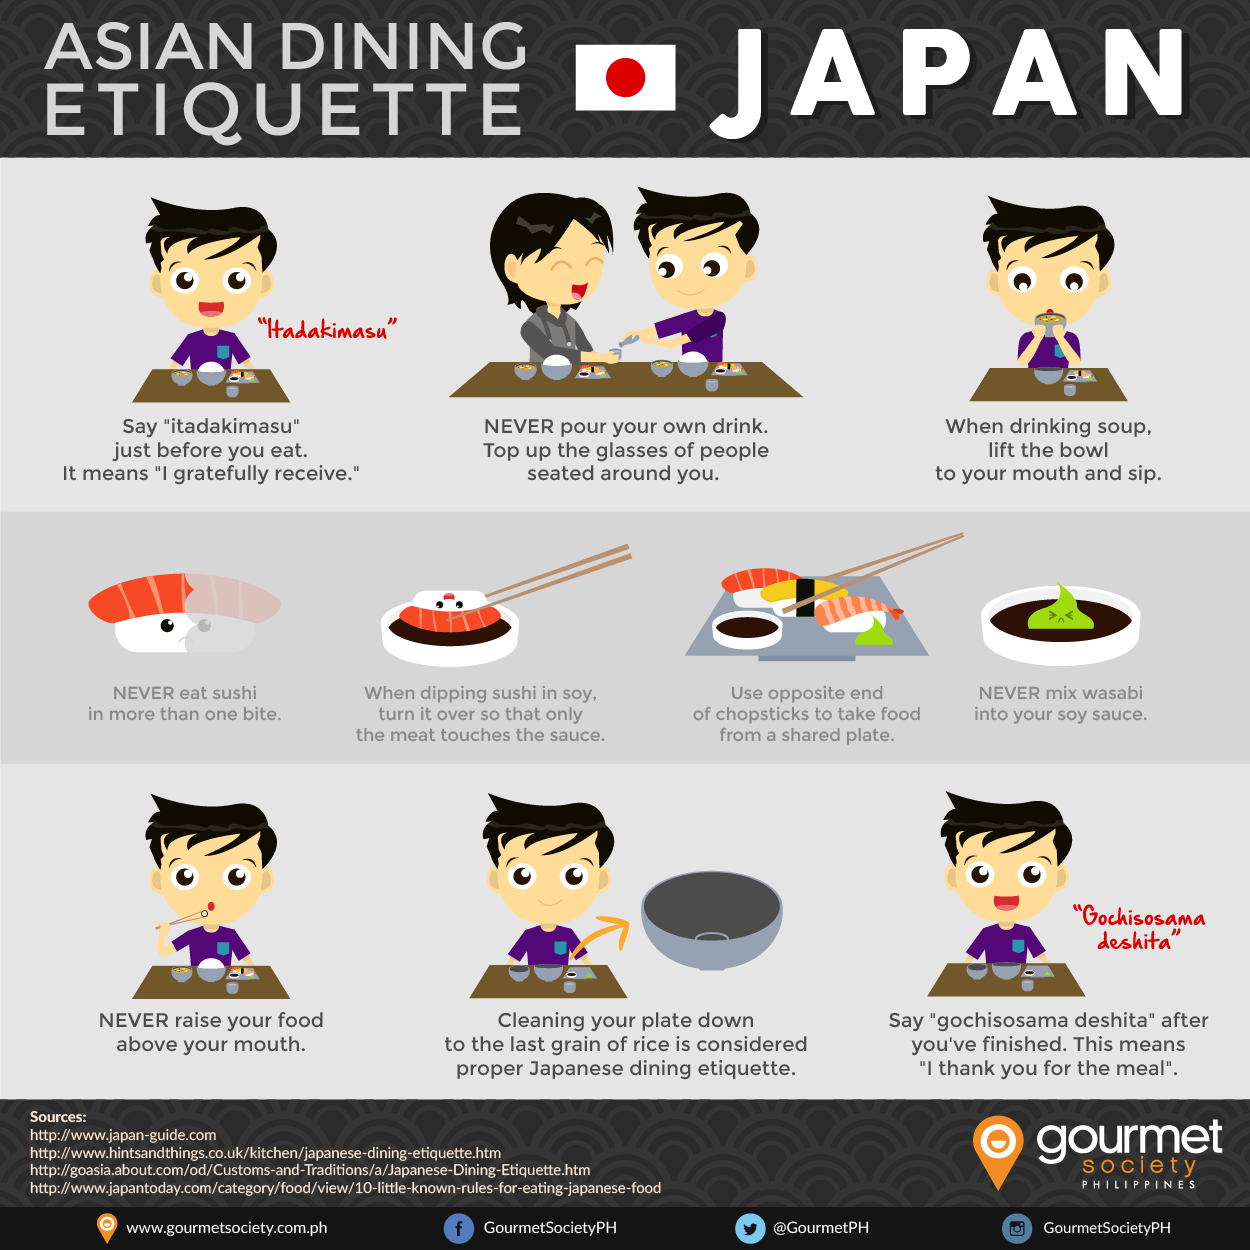 A very simple infographic that offers up 10 simples rules to follow when dining in Japan, like the fact that you should never top up your own drink >> https://www.finedininglovers.com/blog/food-drinks/japanese-dining-ettiquette/